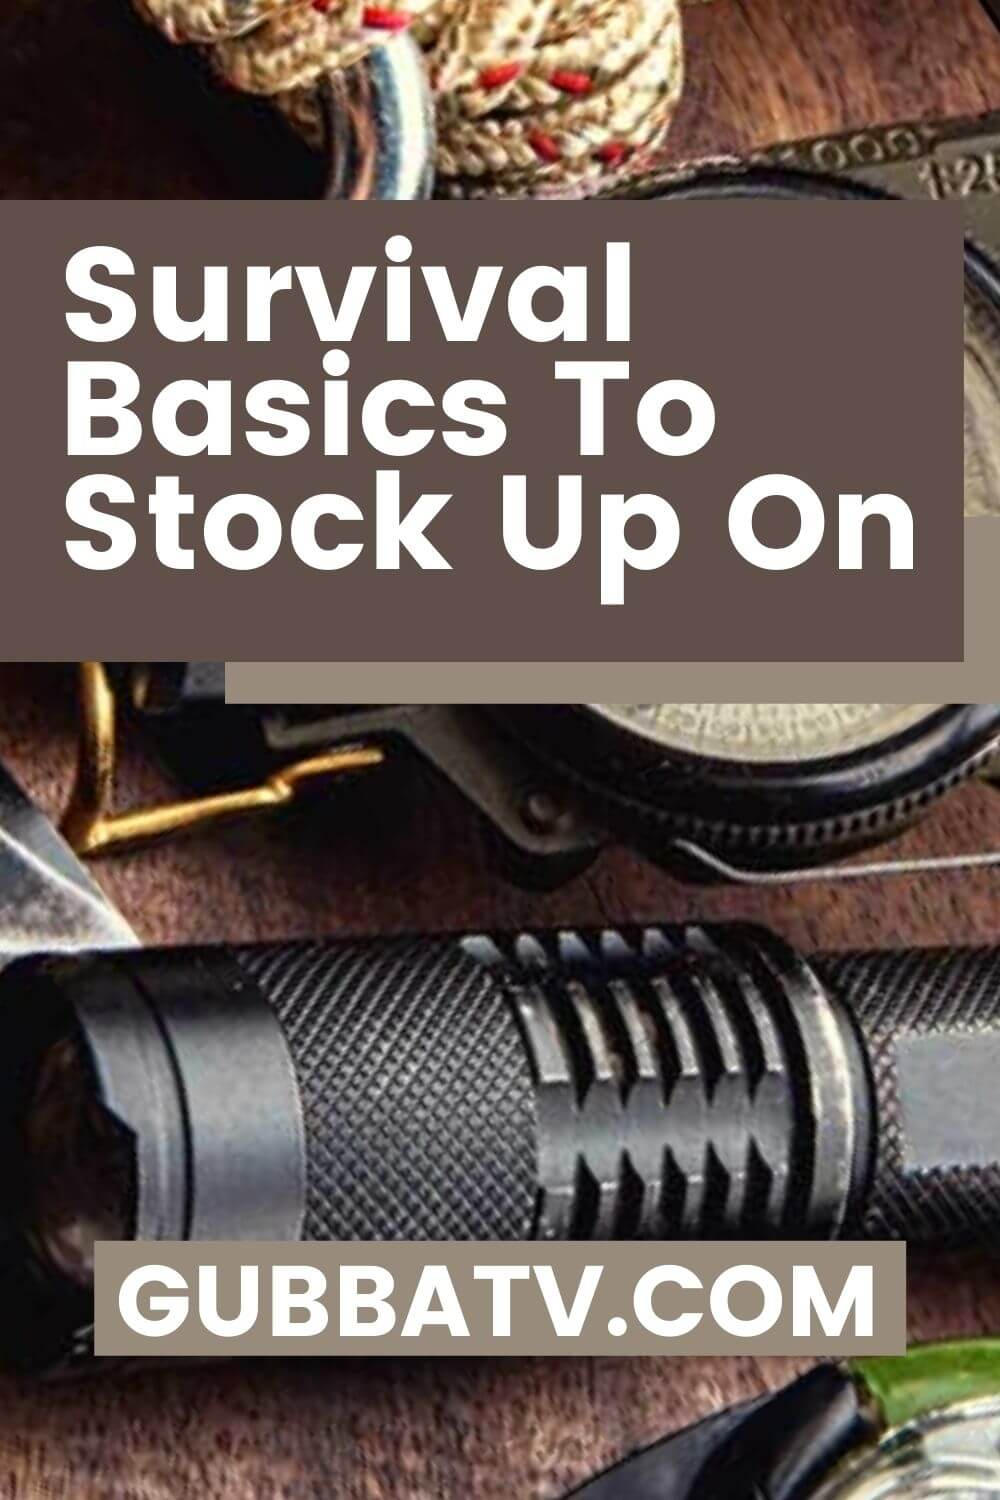 Survival Basics To Stock Up On